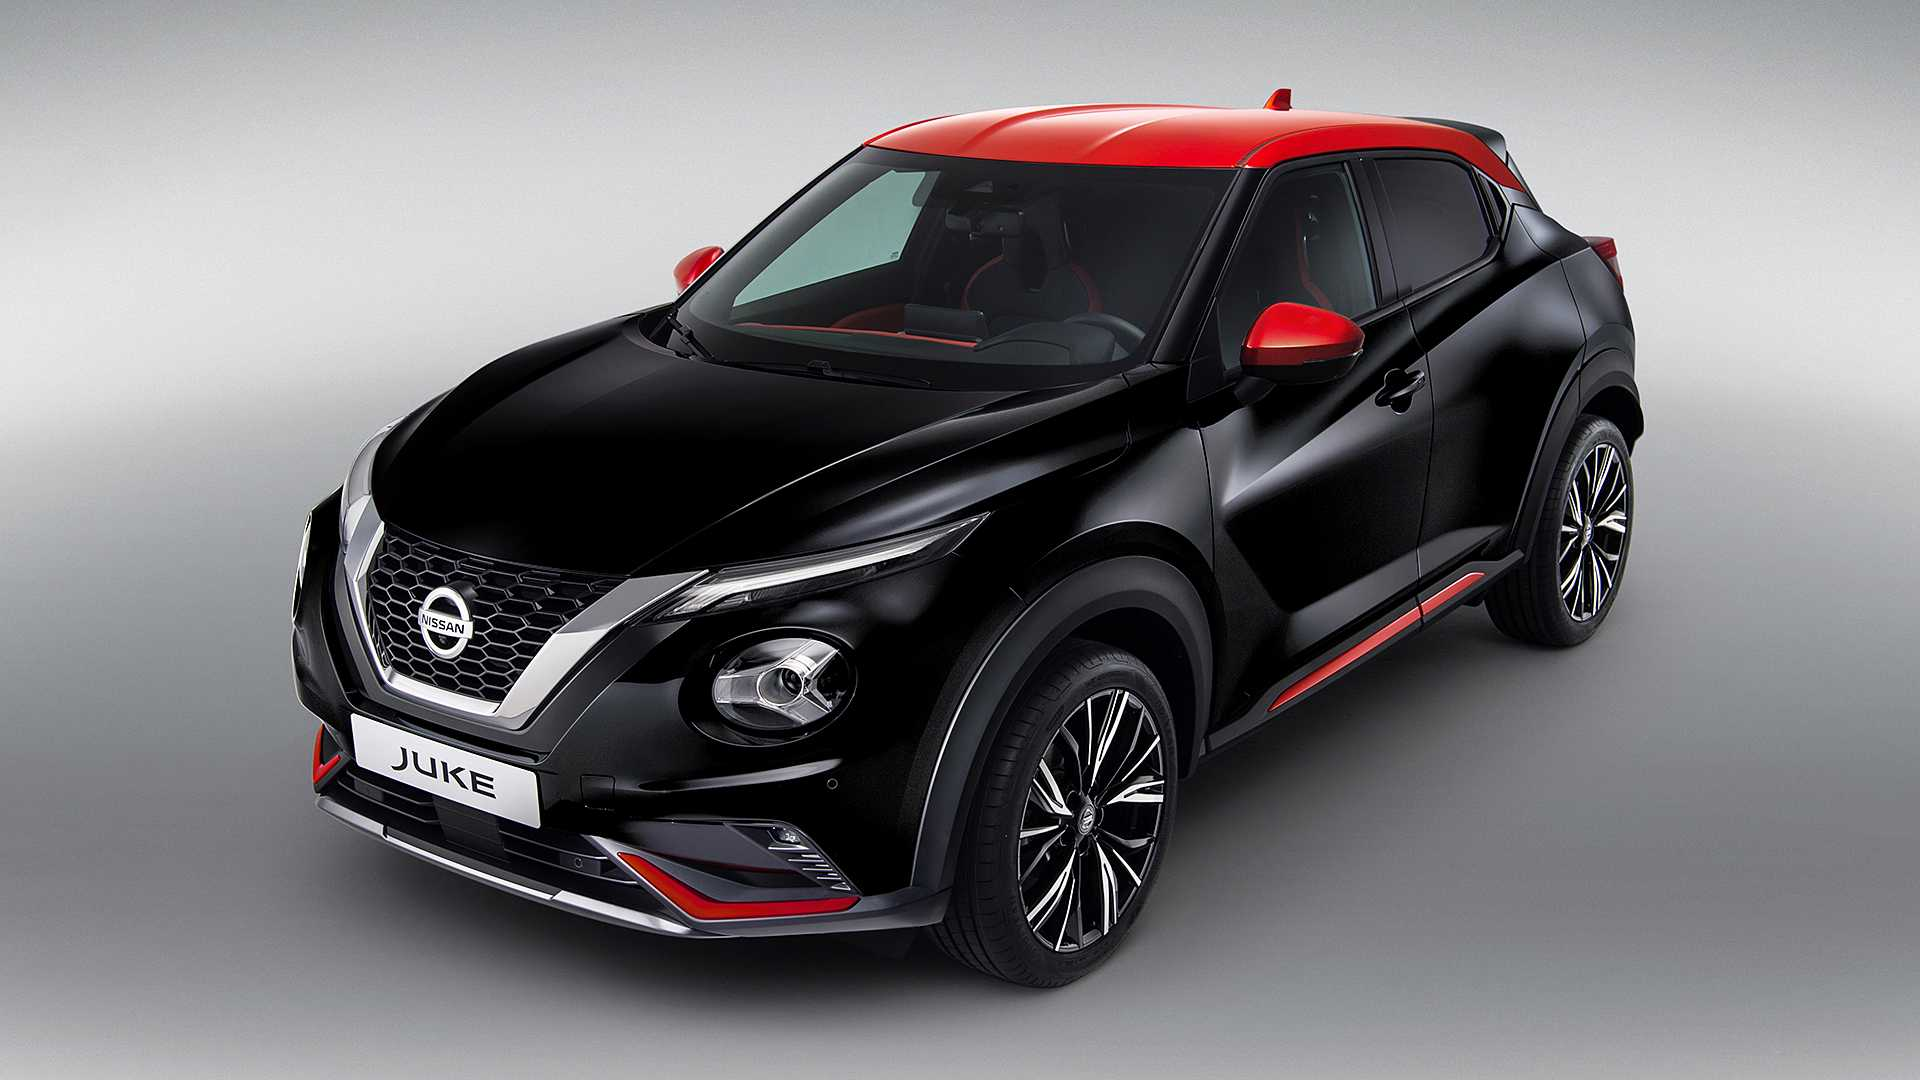 2020 Nissan Juke Shows Off Funky Styling In Official Videos